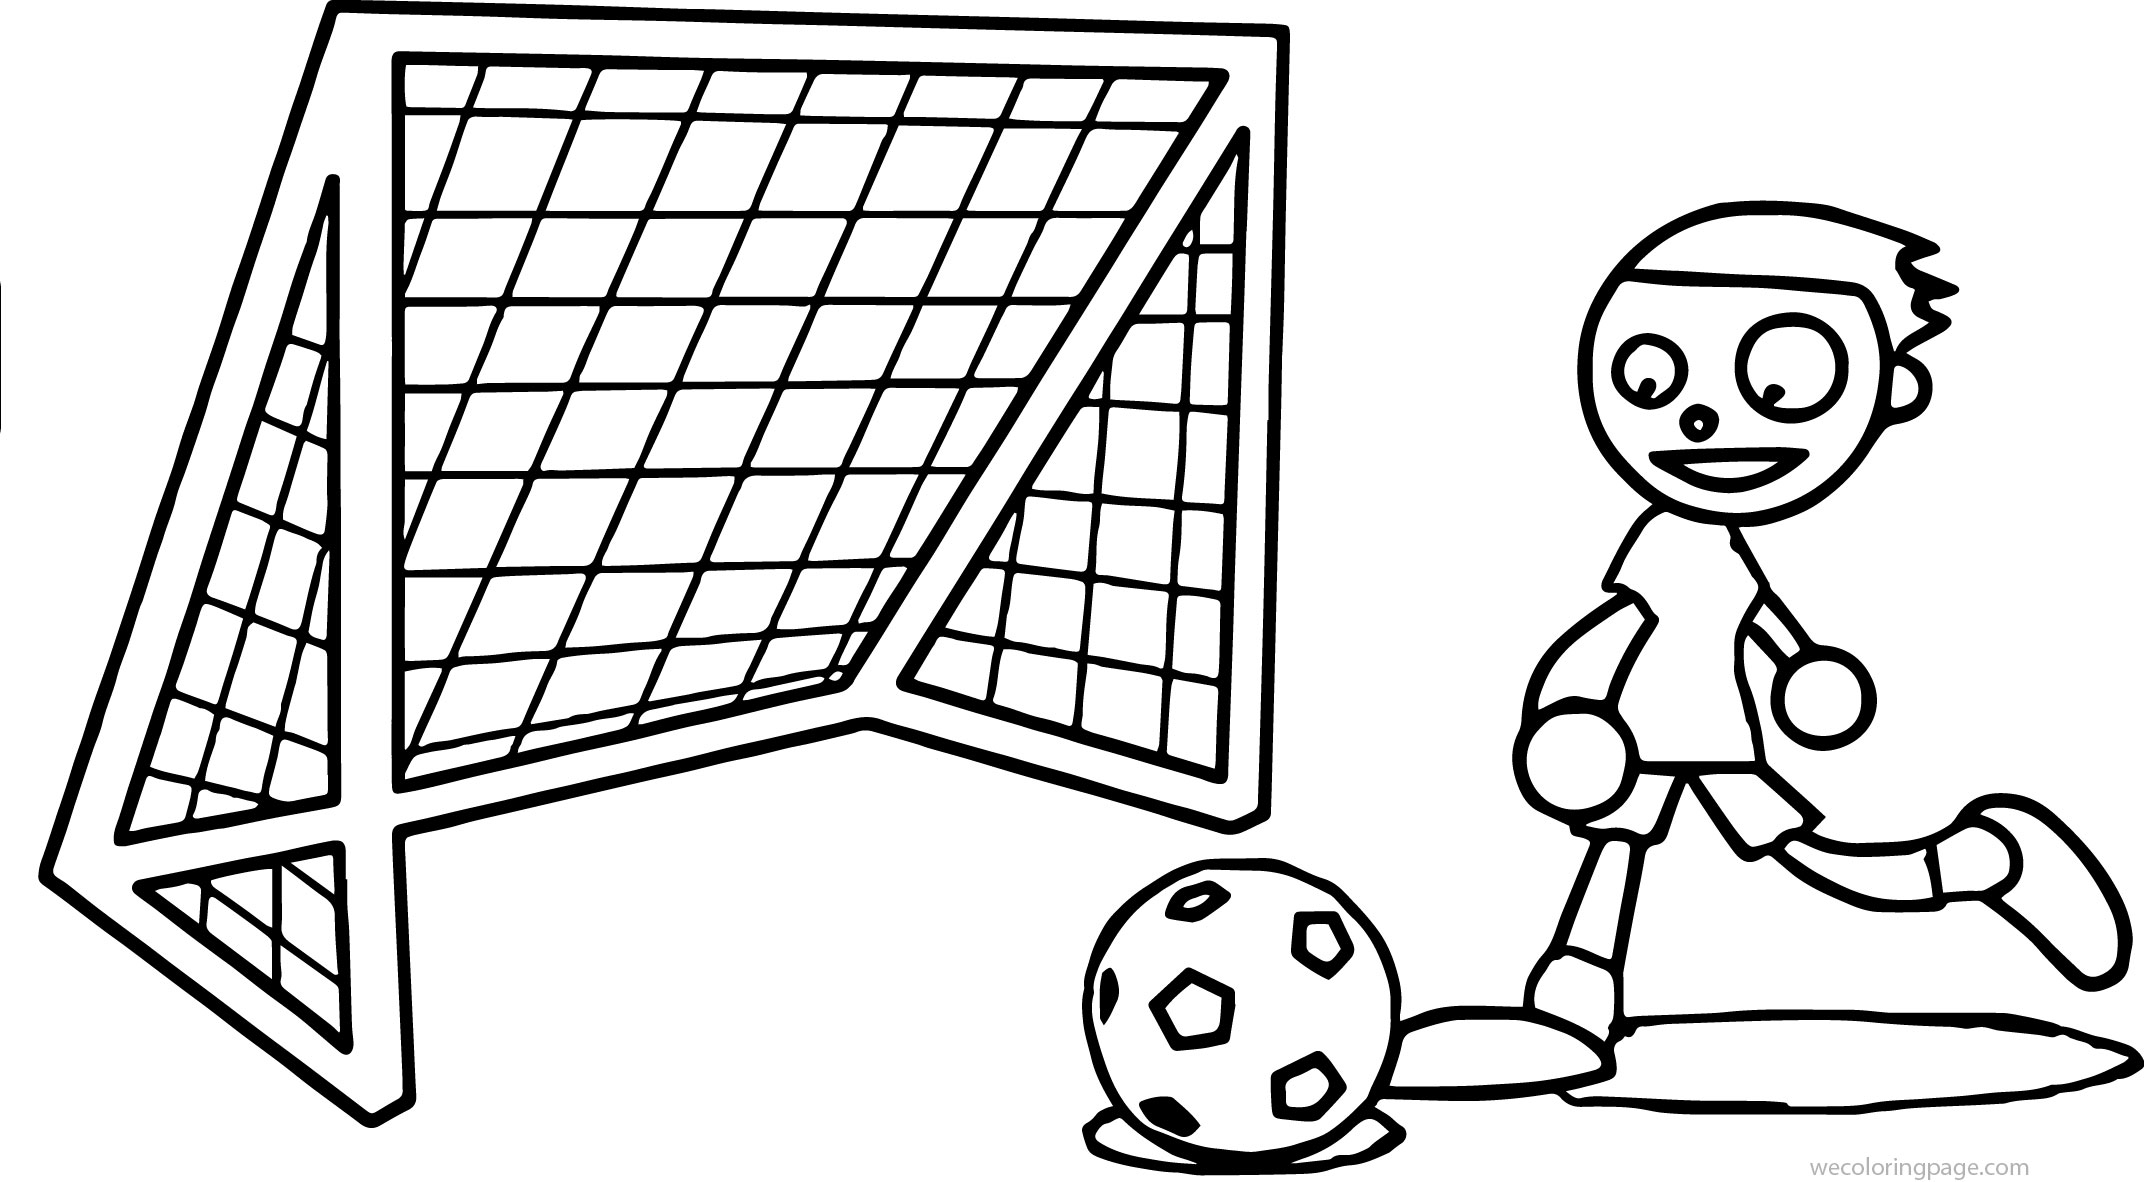 pbs kids playing soccer coloring page wecoloringpage